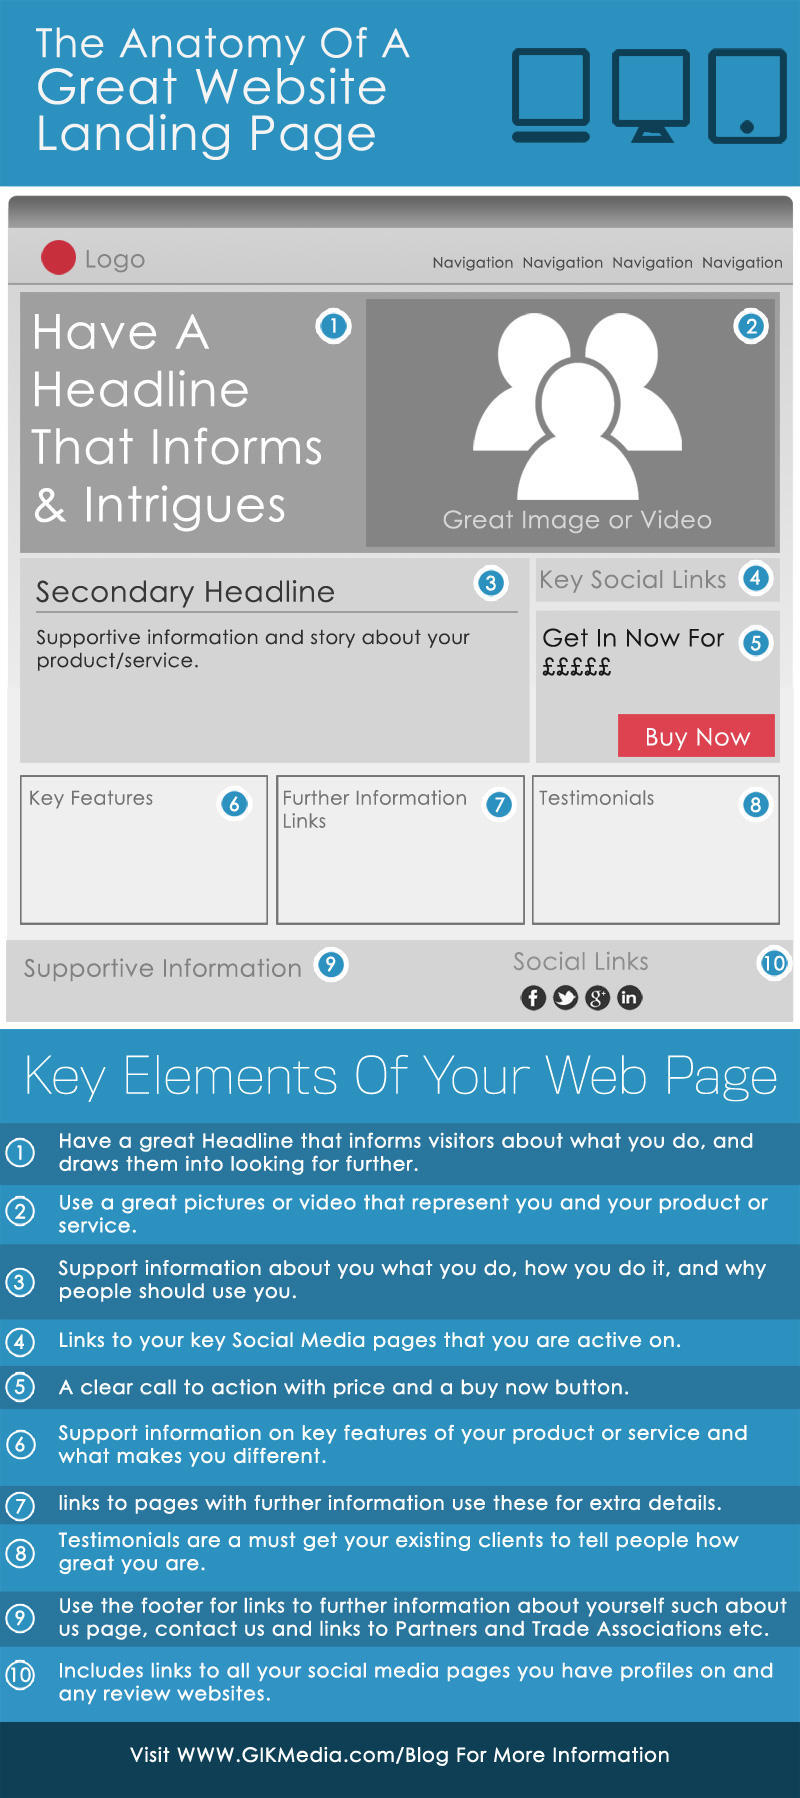 Anatomy Of A Great Website Landing Page InfoGraphic